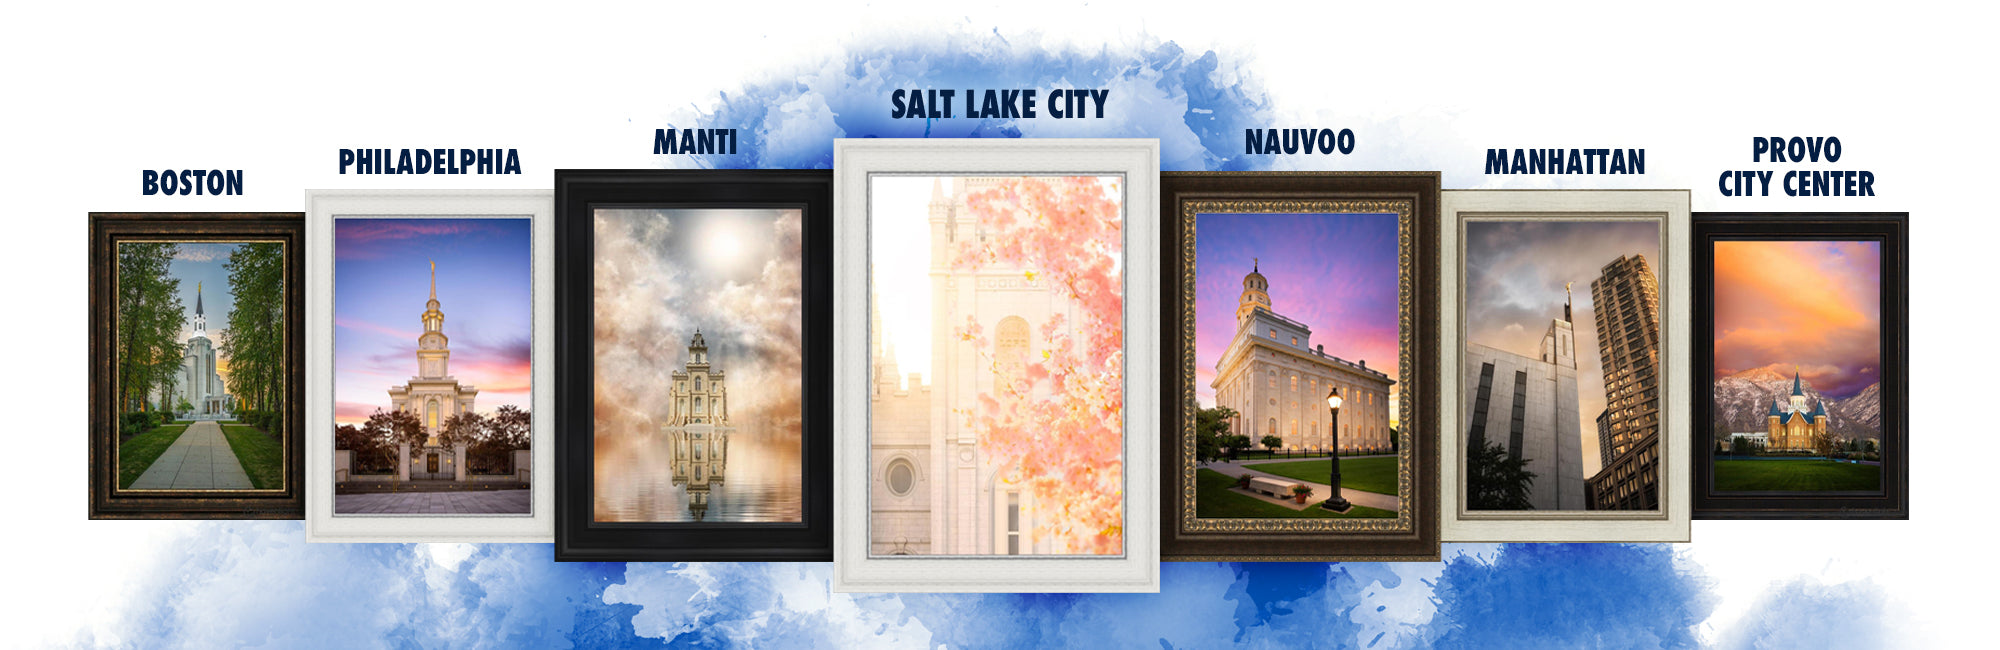 LDS Temples by Name   Temple Art & Pictures